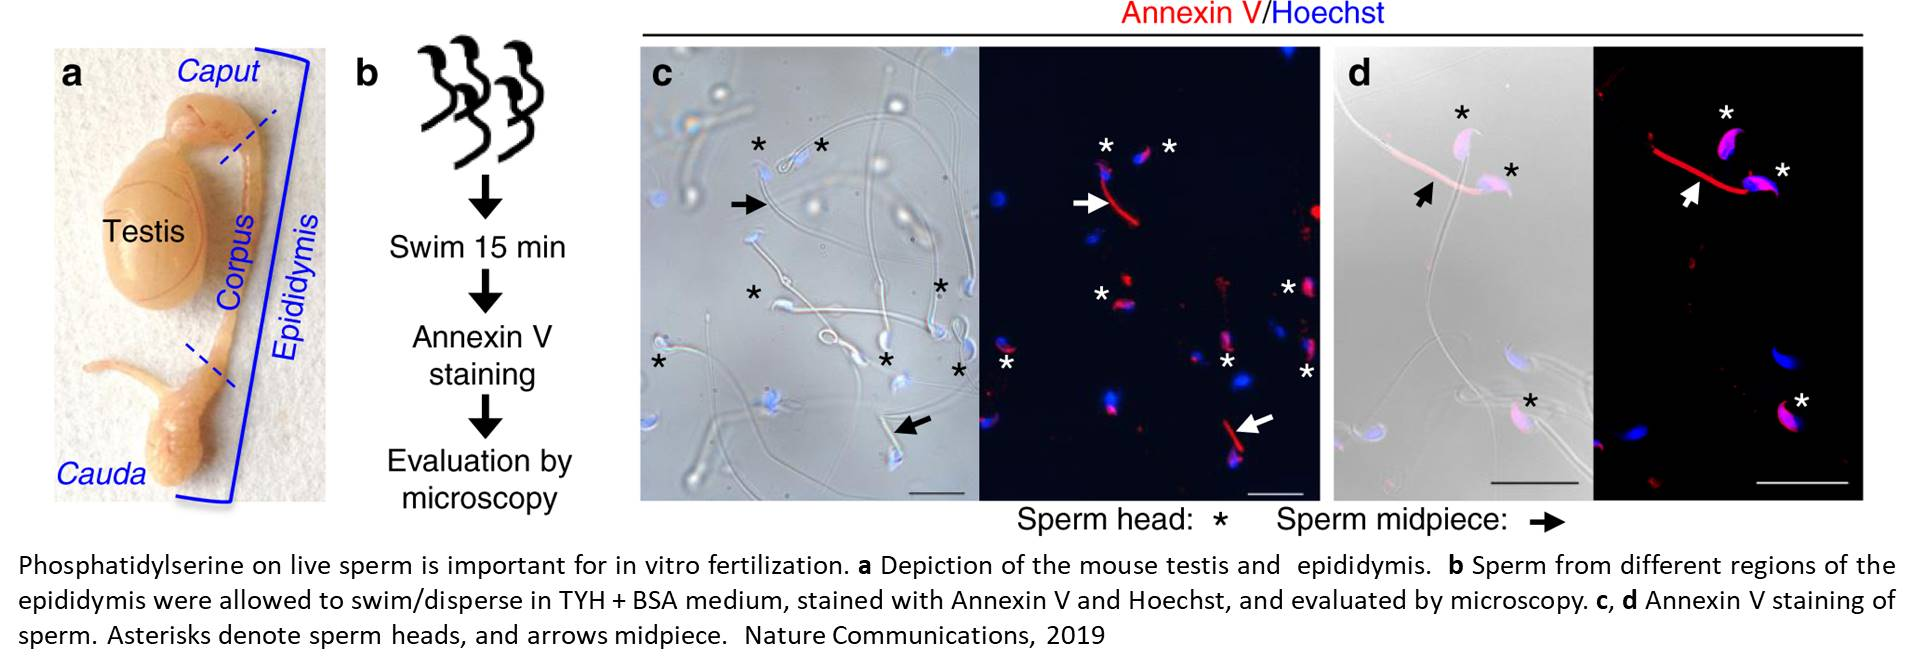 New players in the fertilization may help to address infertility